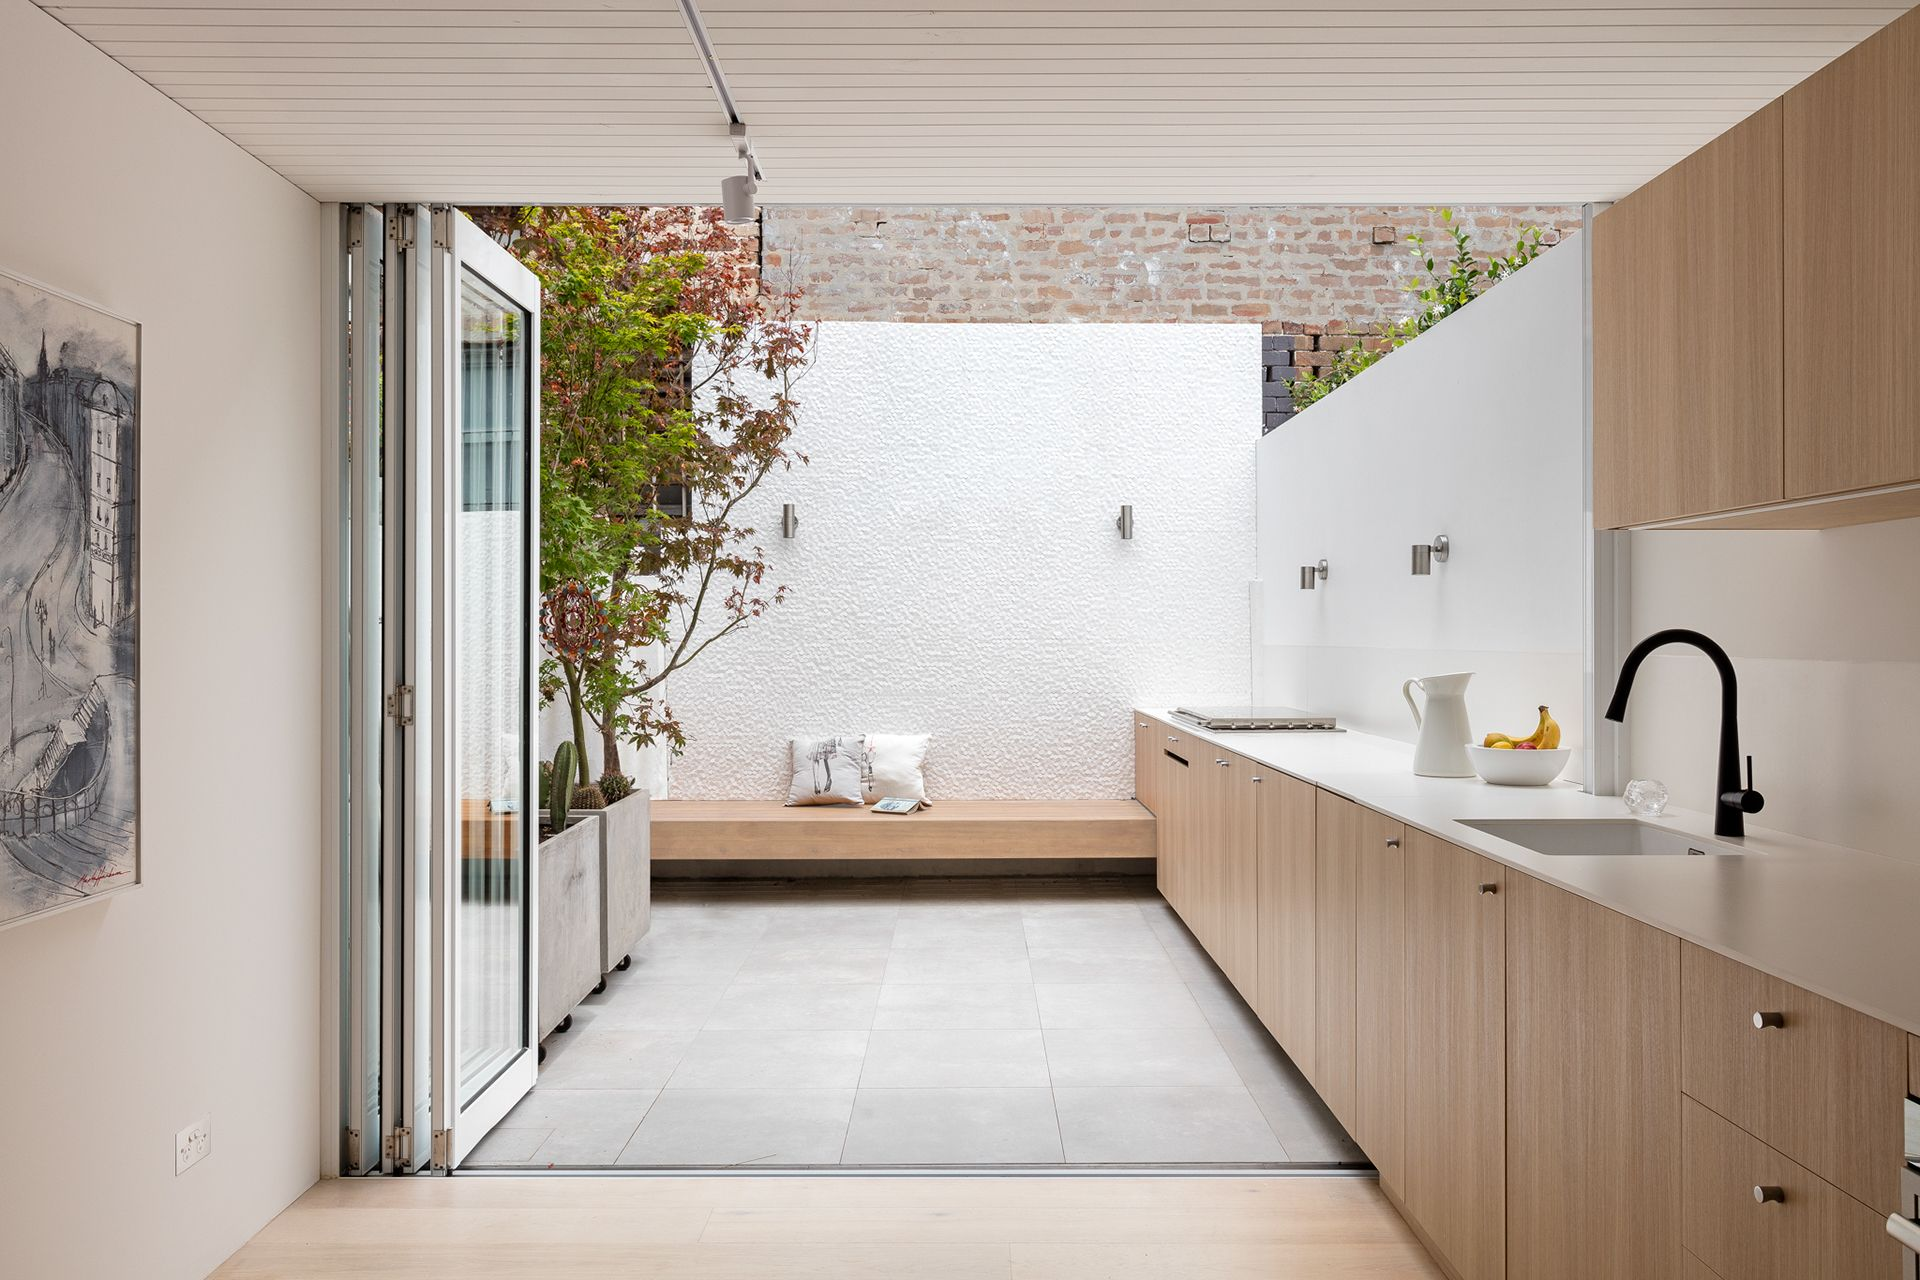 Surry Hills House | Kitchen | Pinterest | House, Small spaces and Spaces